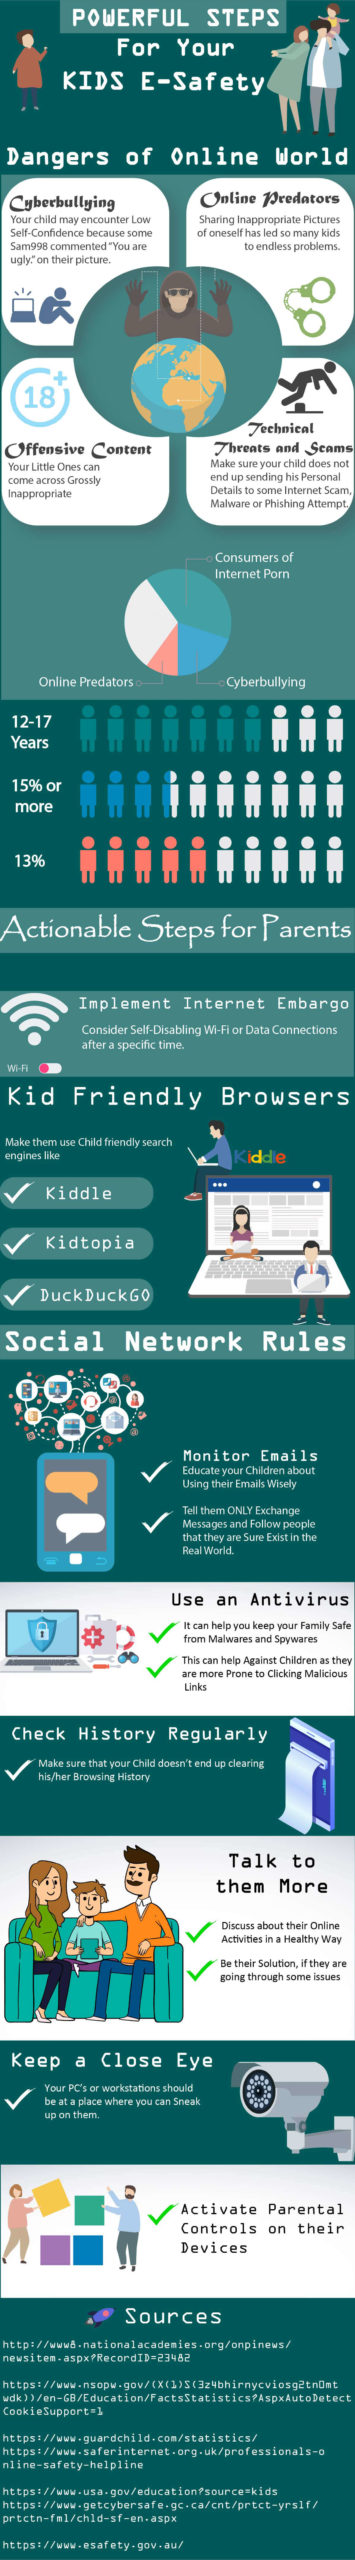 Kids Esafety Infographic